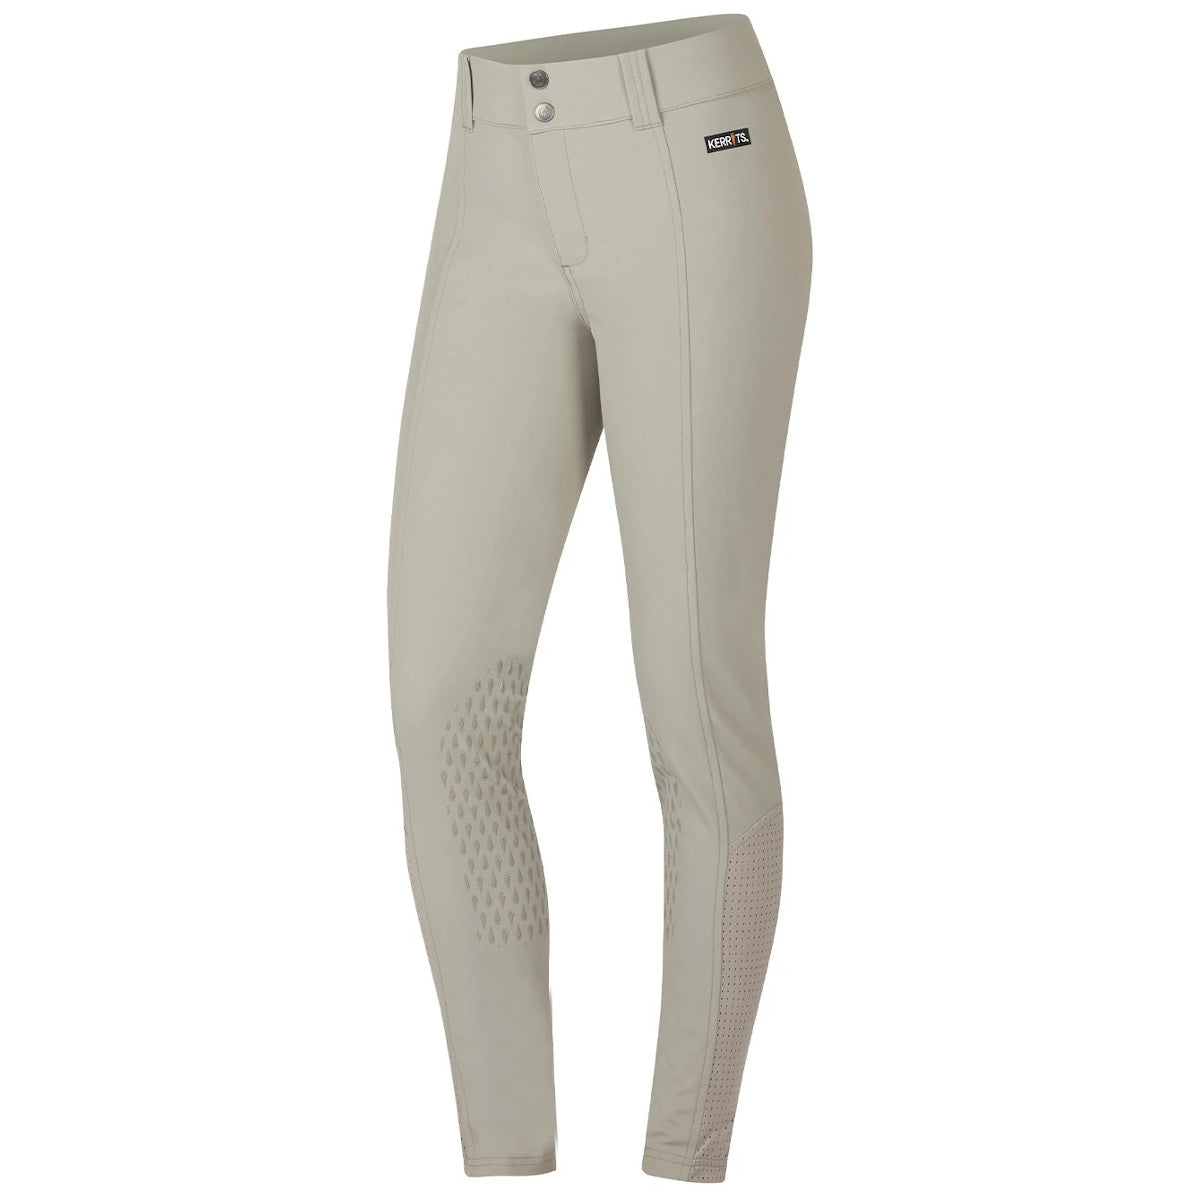 Kerrits Kids' Affinity Ice Fil Knee Patch Breeches